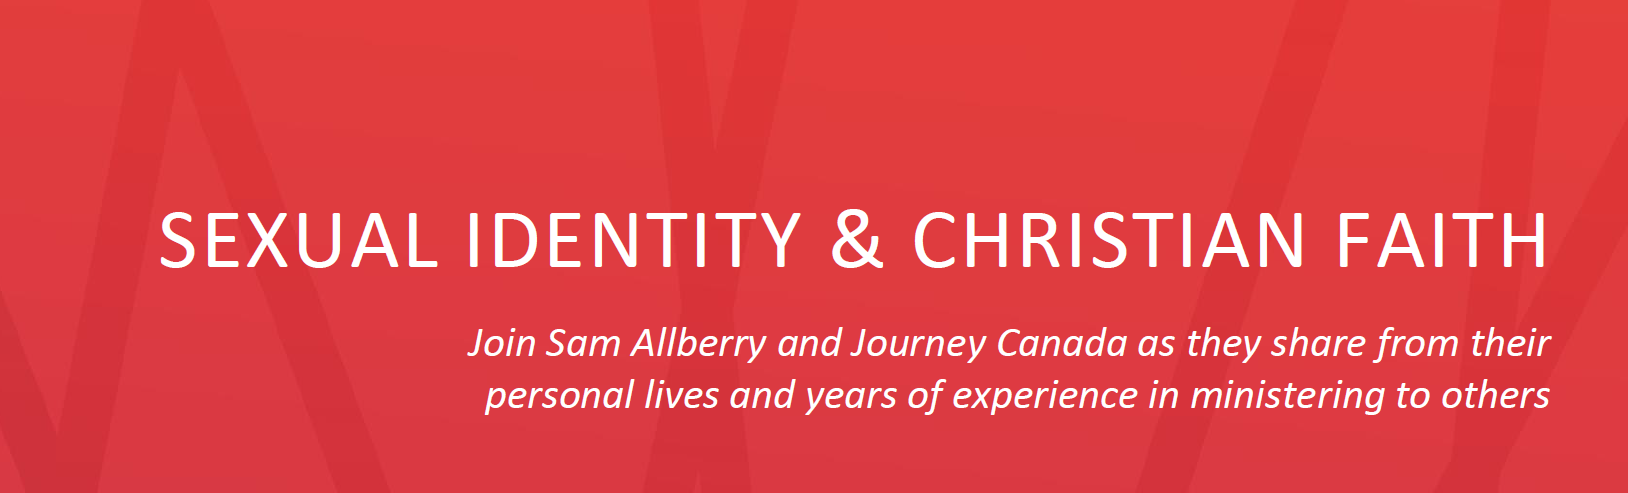 Sexual Identity and Christian Faith Calgary 2019-03.PNG